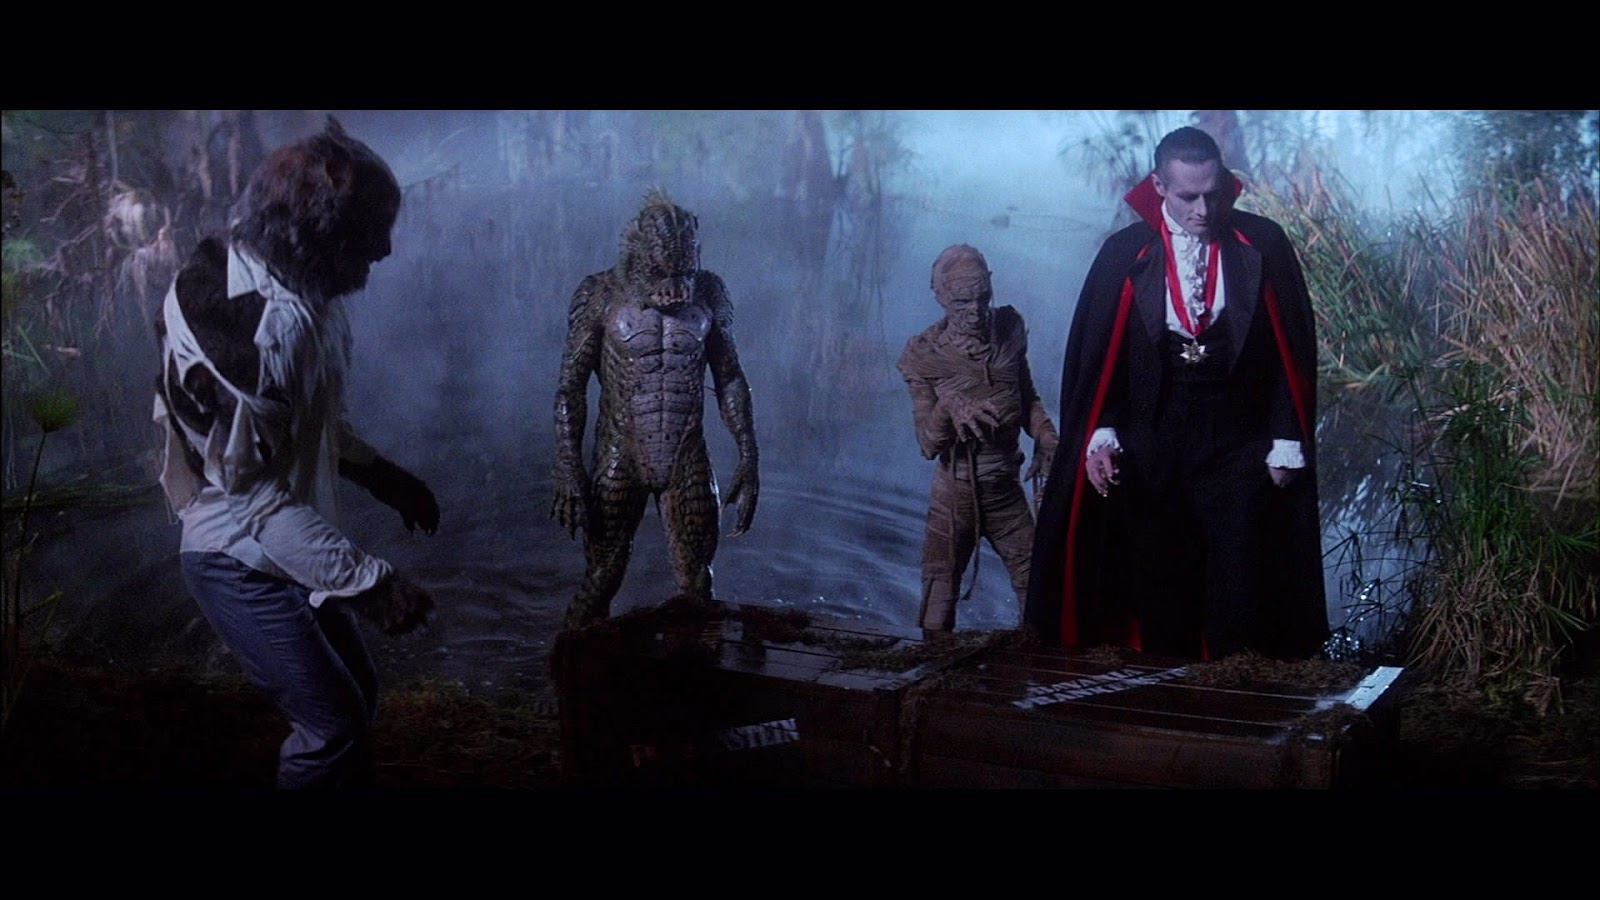 Wolfman vs Dracula vs Mummy vs Black Lagoon Creature